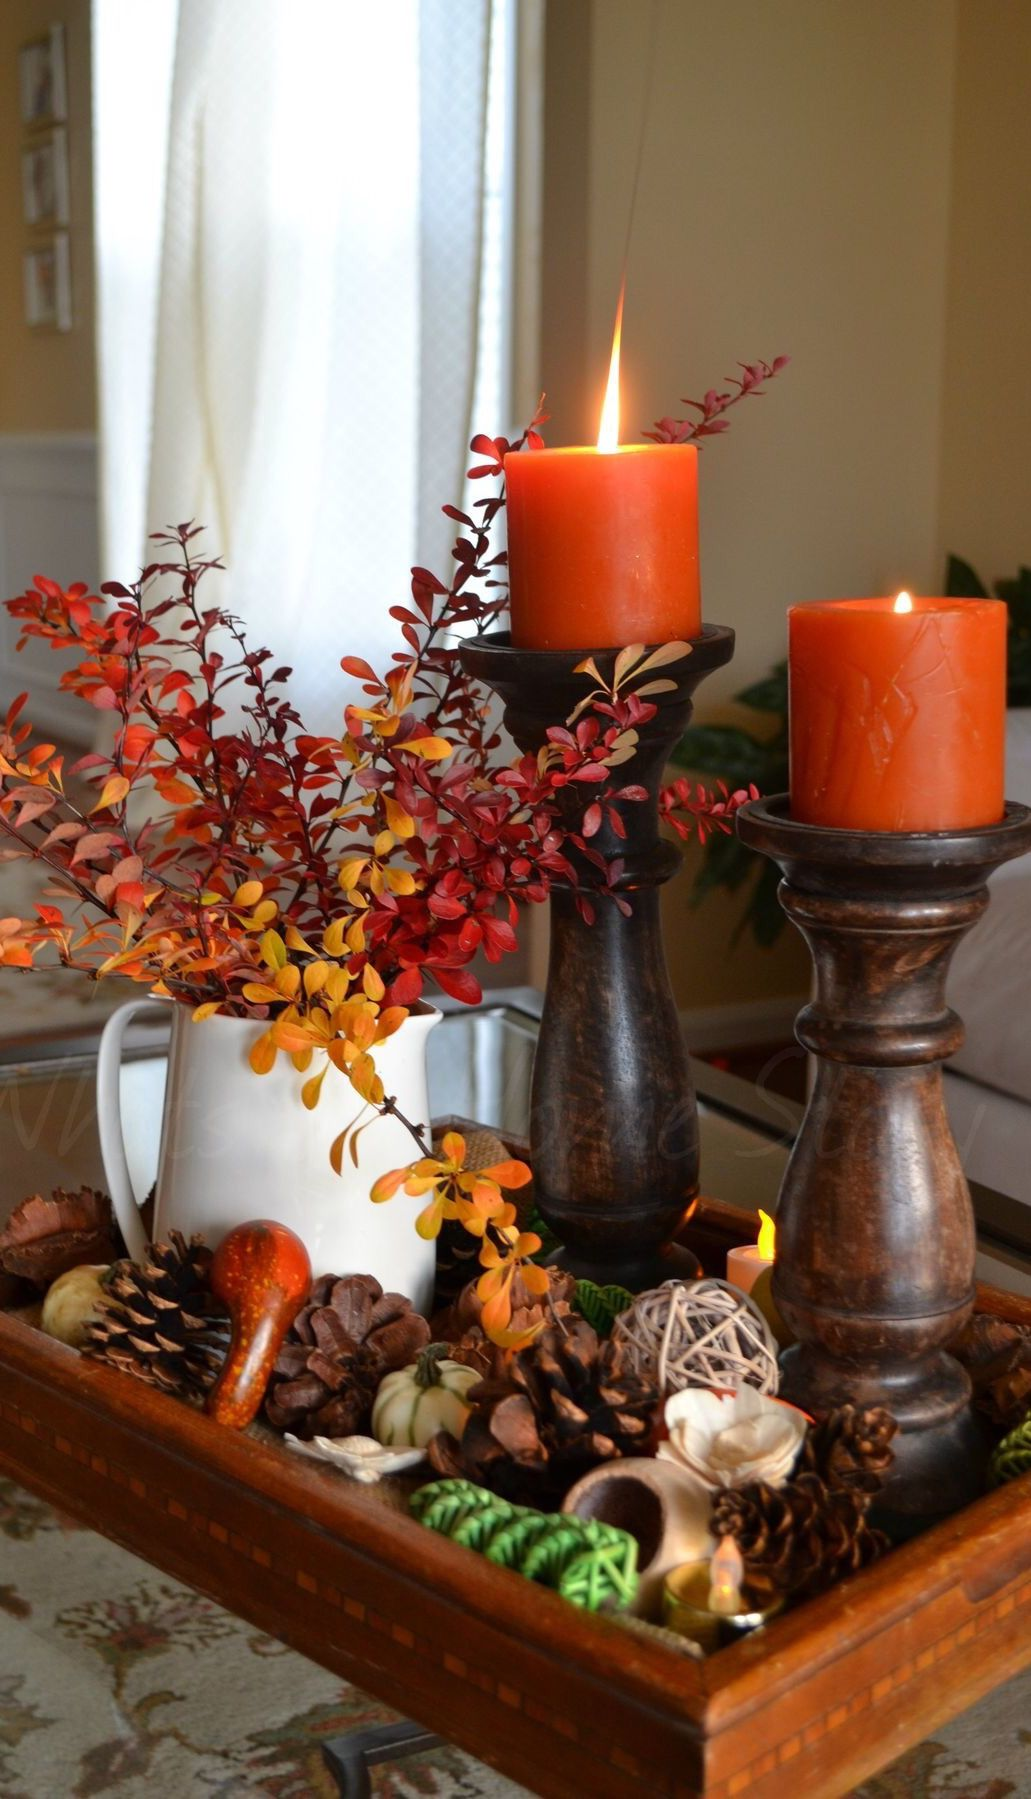 Pin by Lavelle Hatton on Autumn/Fall Fall table decor